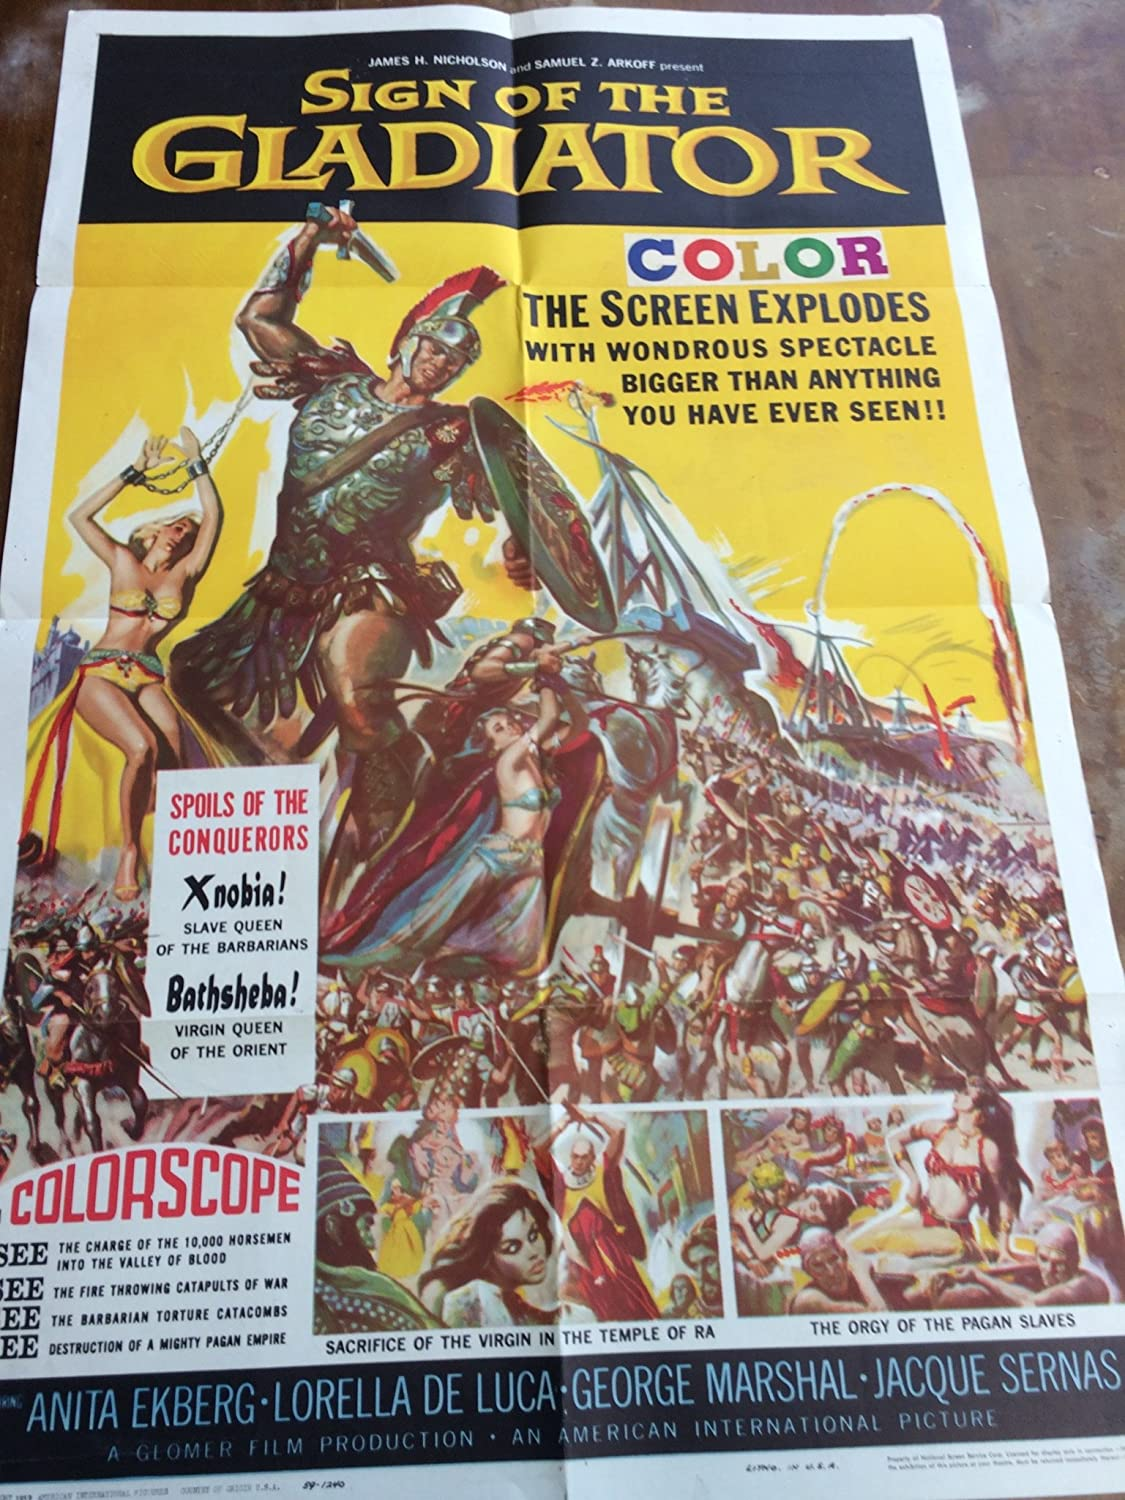 Sign of the Gladiator movie poster, 1959, bright colors